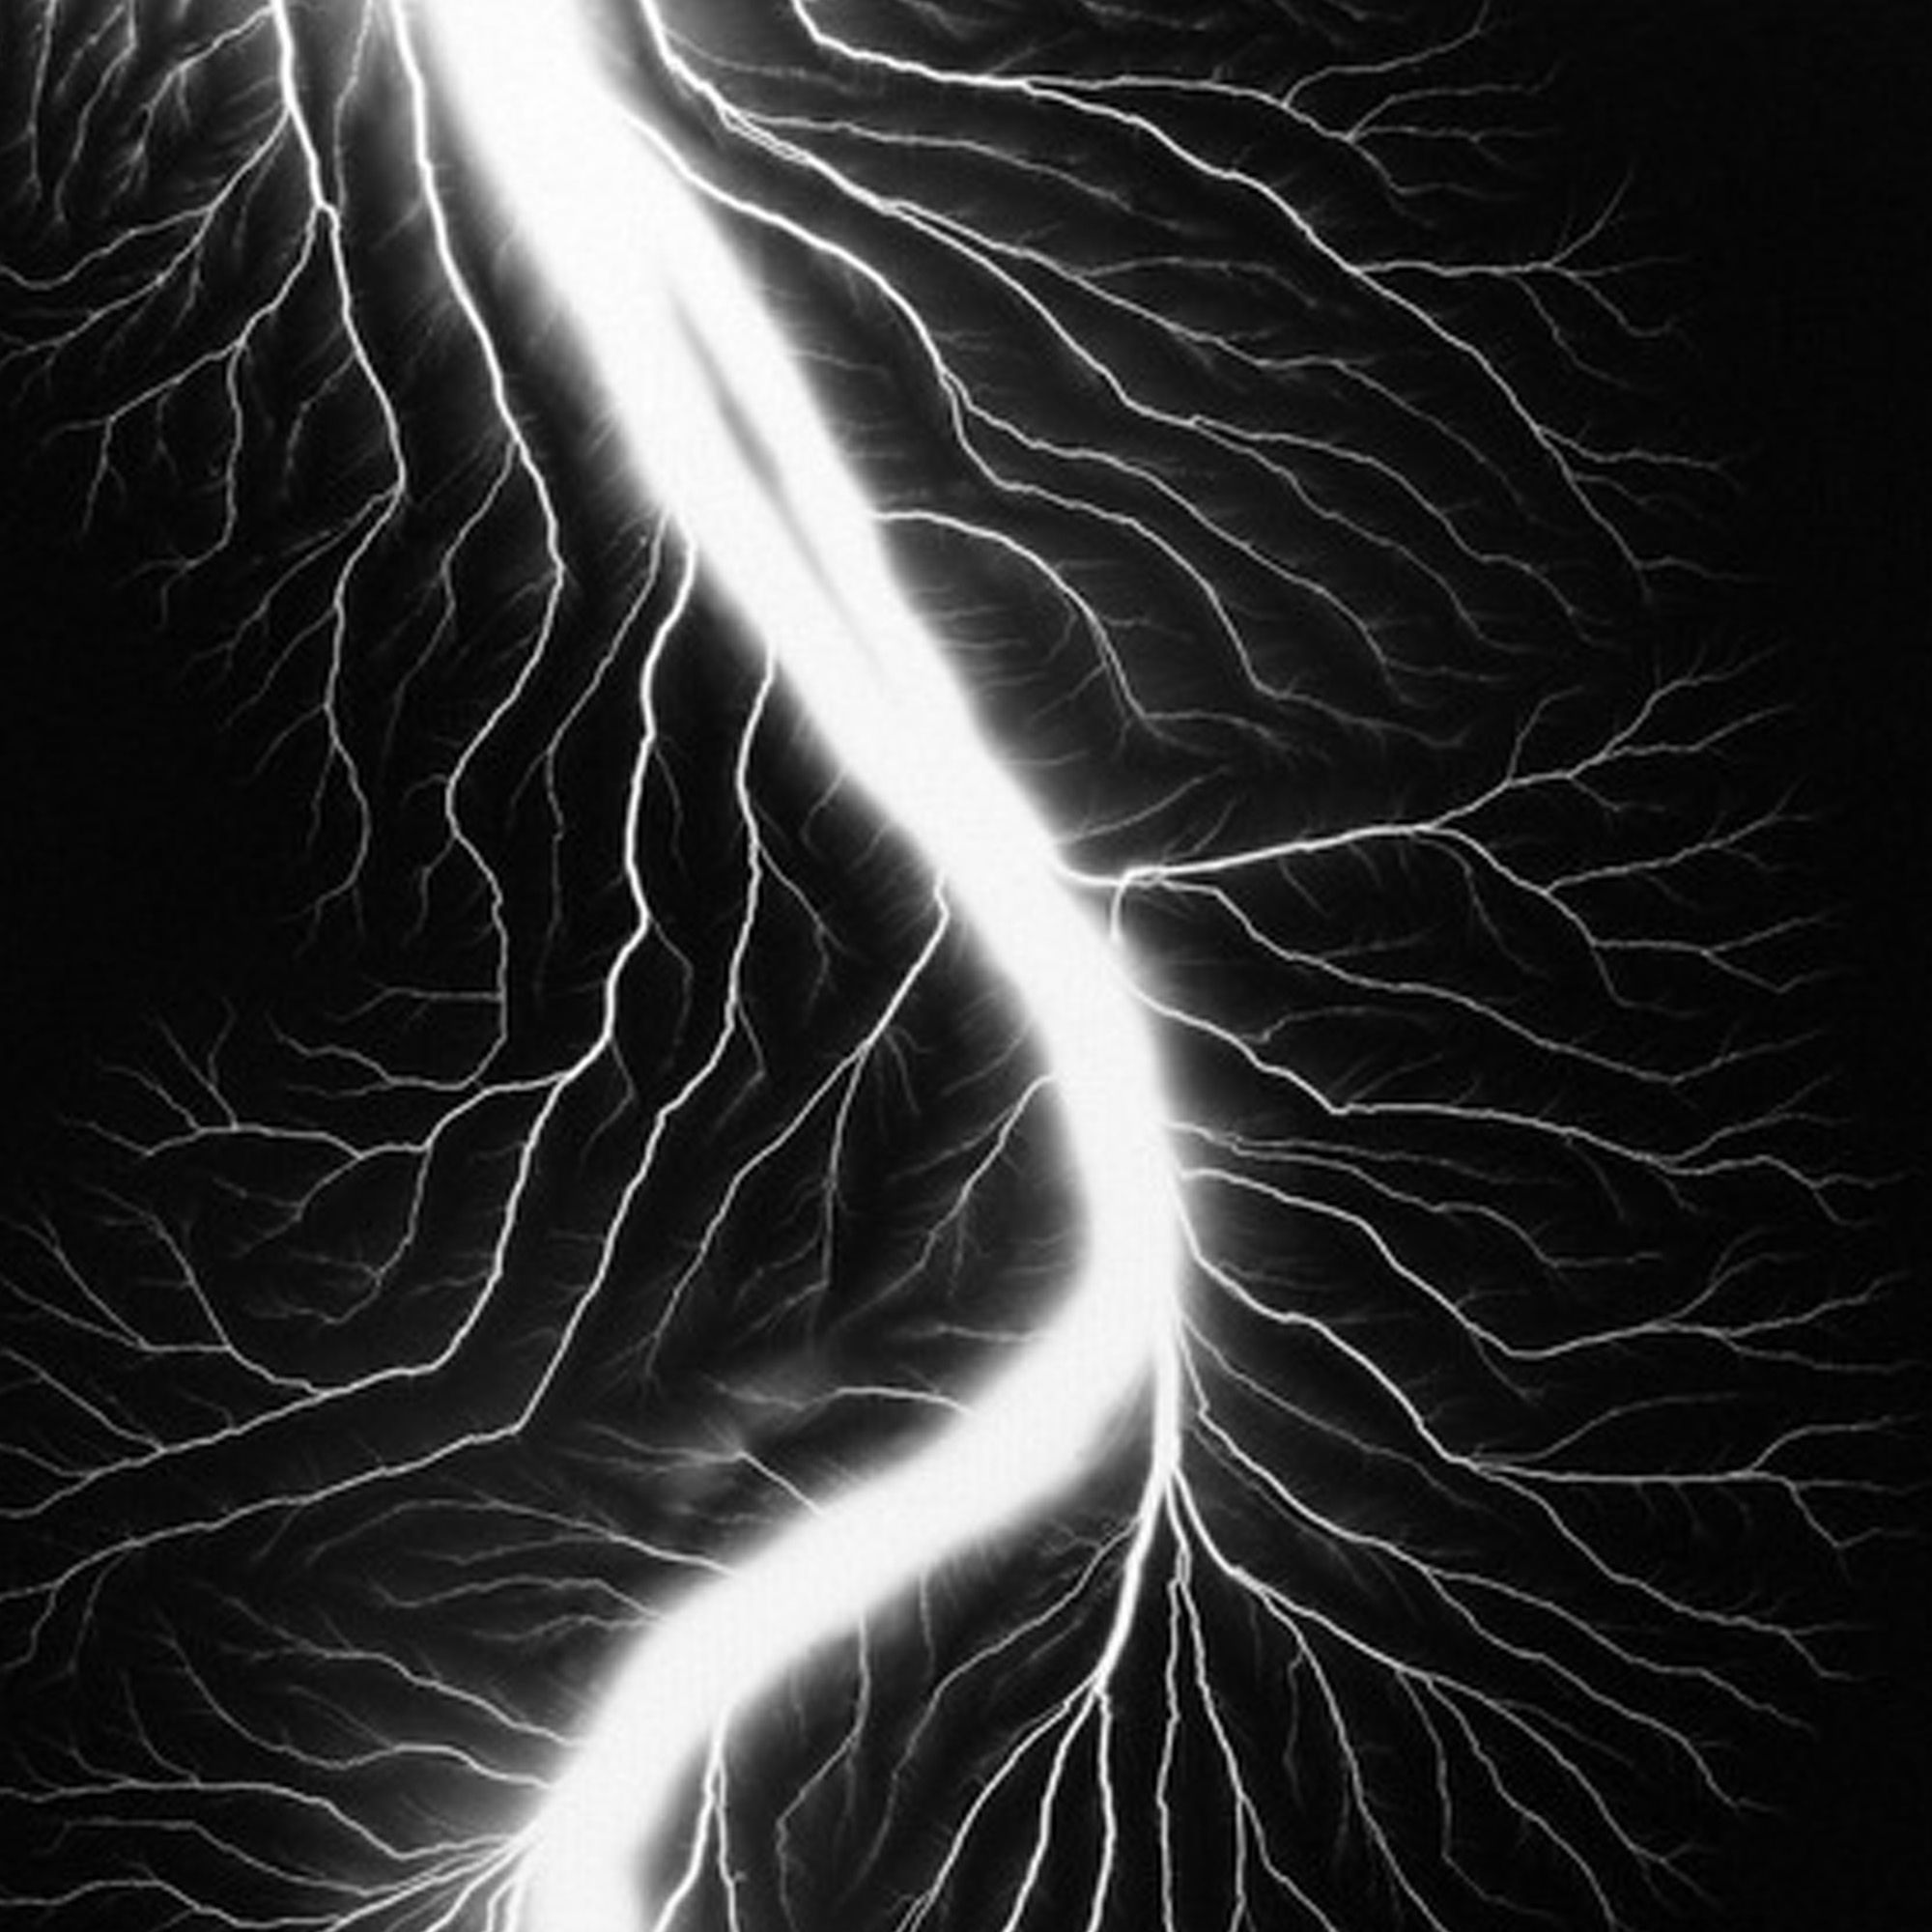 """The Lightning Field photographs of <a target=""_blank"" href=""http://www.sugimotohiroshi.com/"">Hiroshi Sugimoto</a> have such energy and add dramatic tension to a room."""